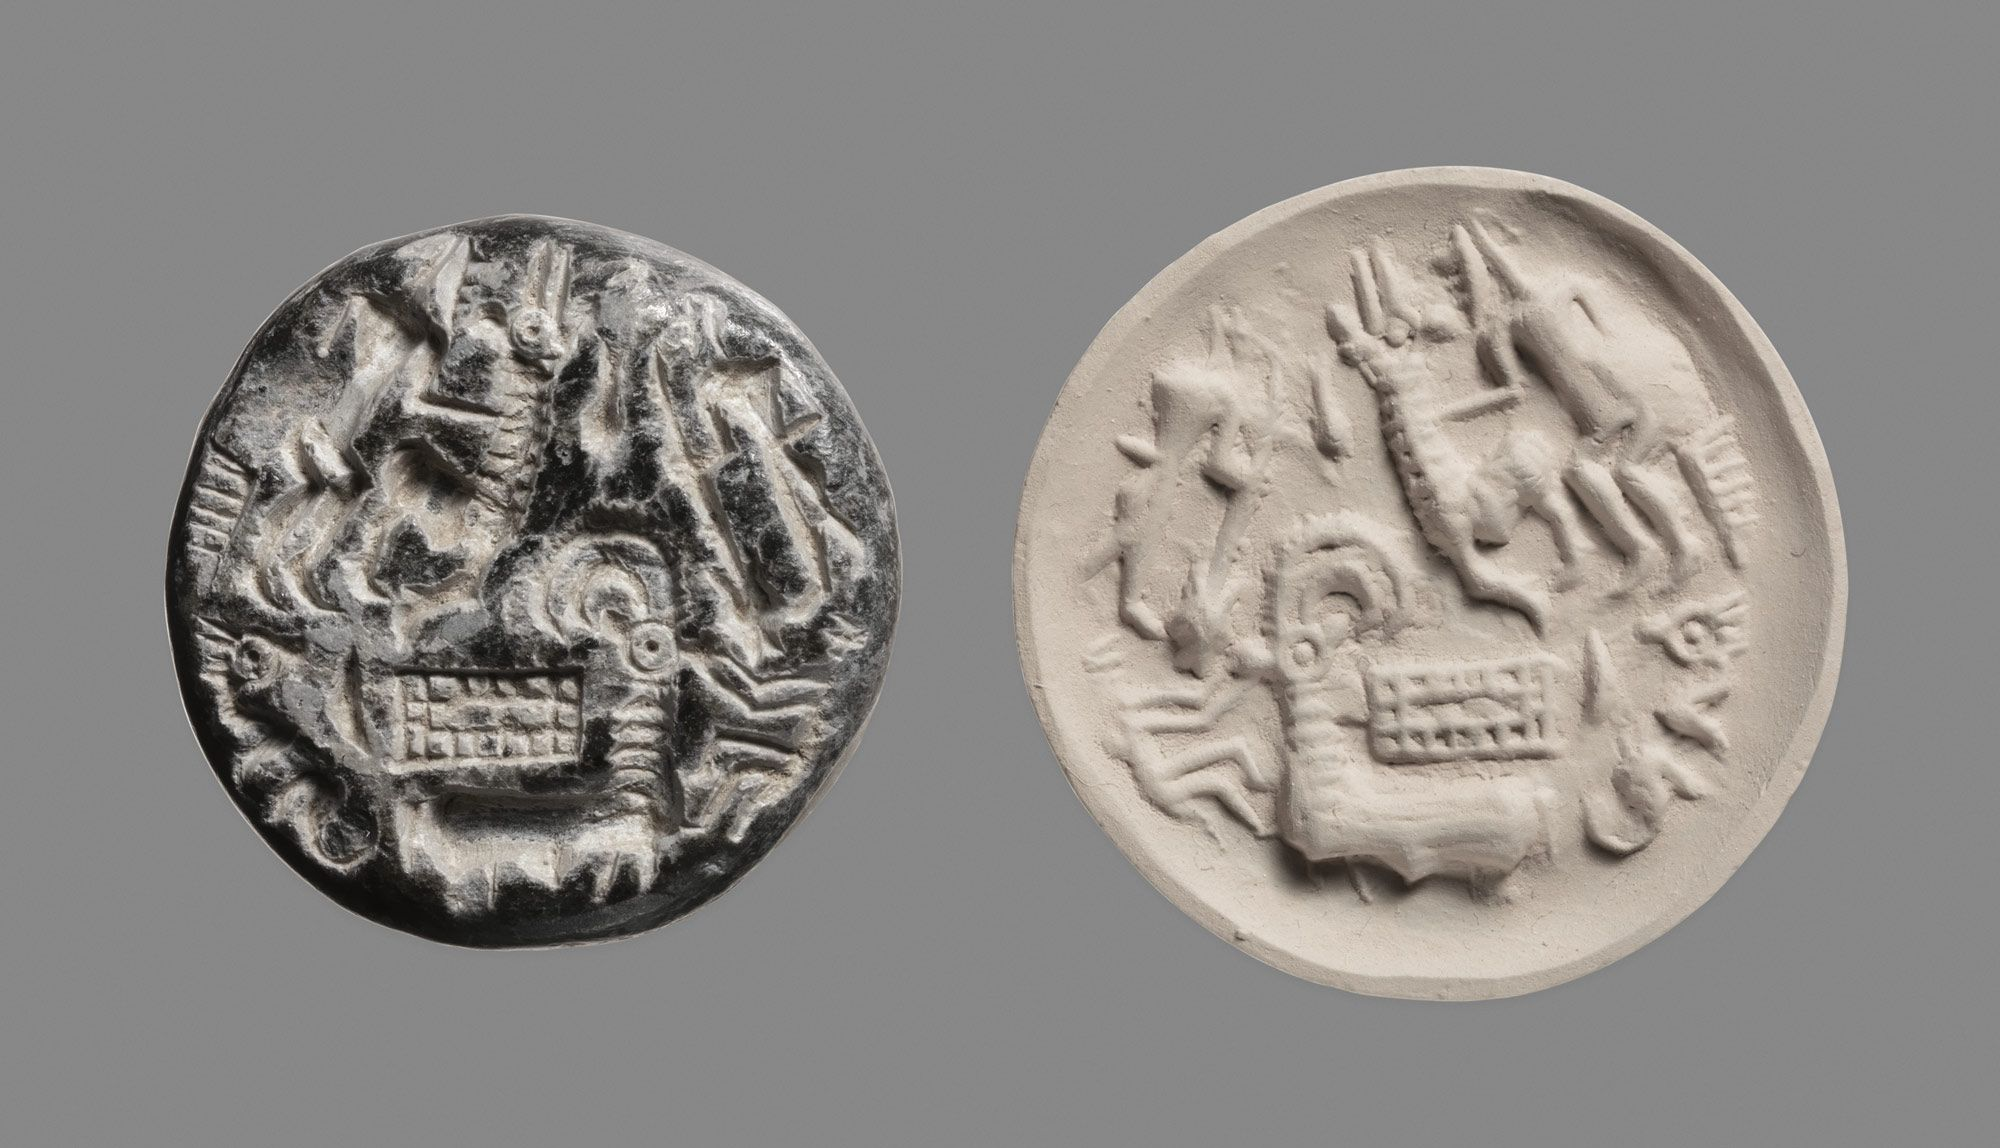 Stamp seal: hunters and goats, rectangular pen (?)  Period: Middle Bronze Age Date: ca. early 2nd millennium B.C. Geography: Dilmun Culture: Dilmun Medium: Steatite or chlorite Dimensions: 0.47 in. (1.19 cm)